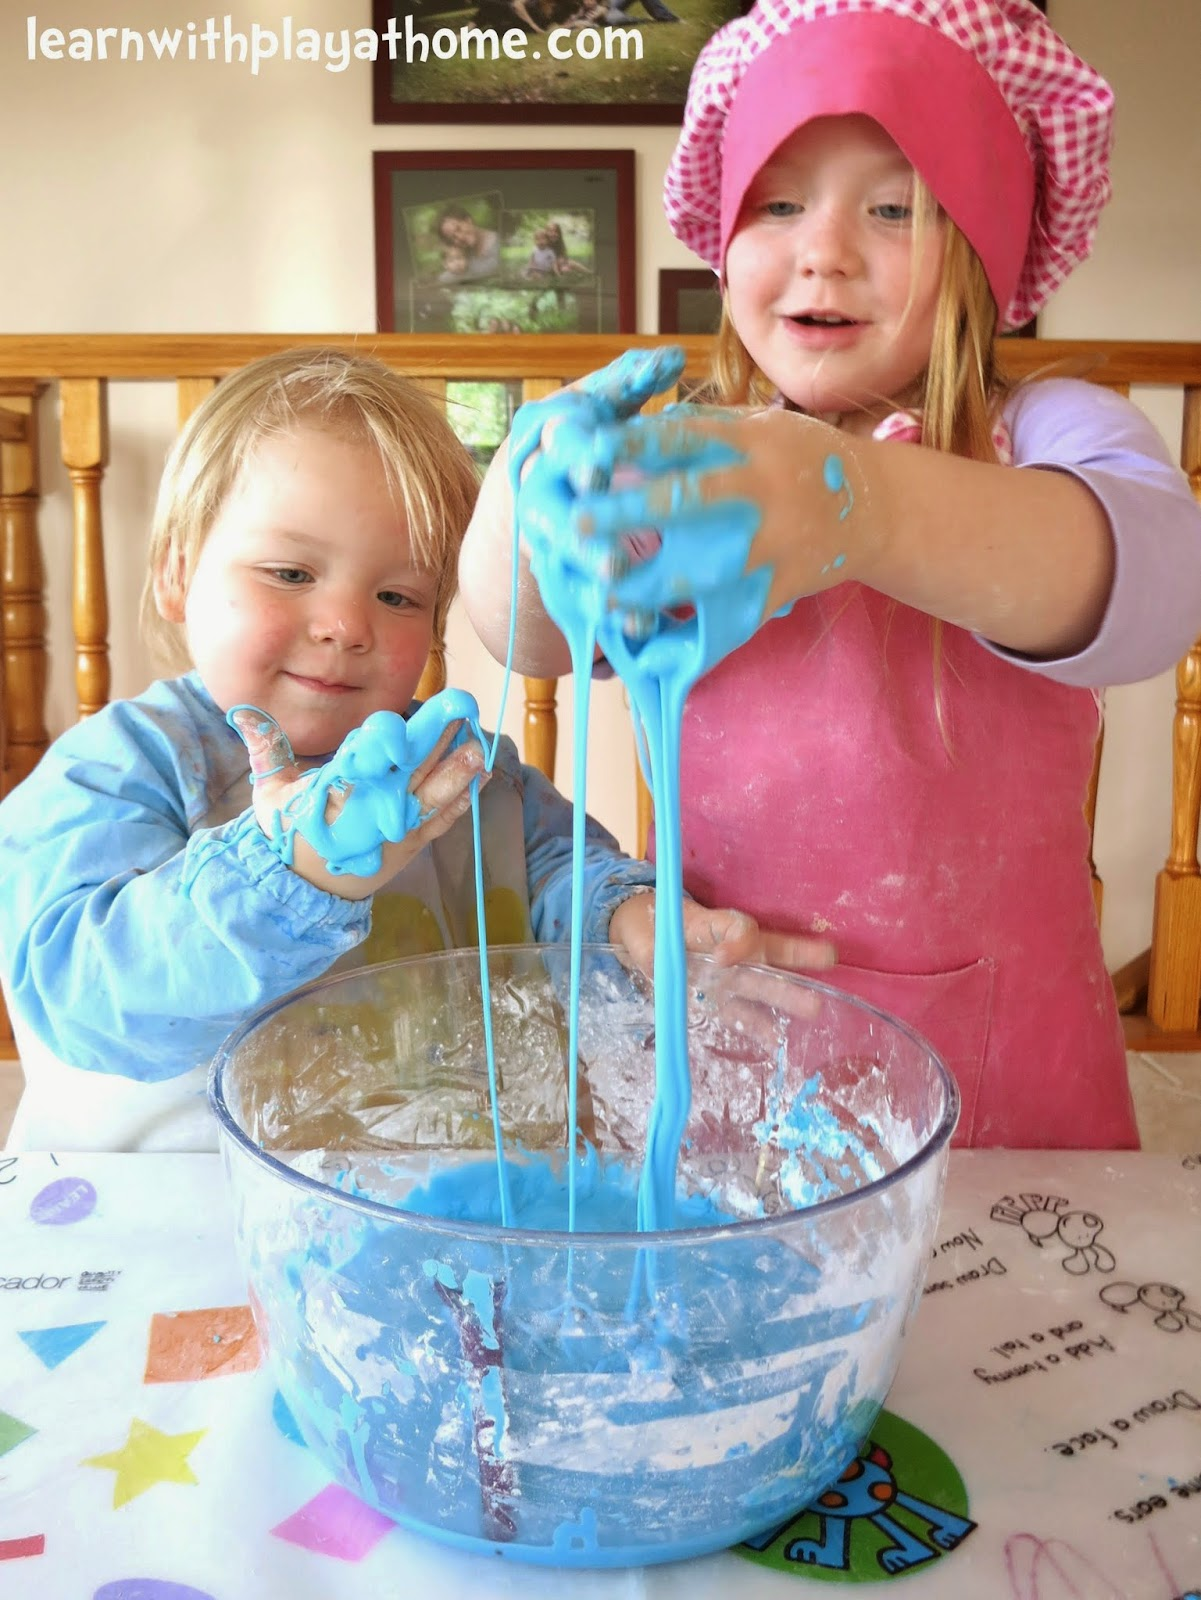 how to make slime with water and cornflour